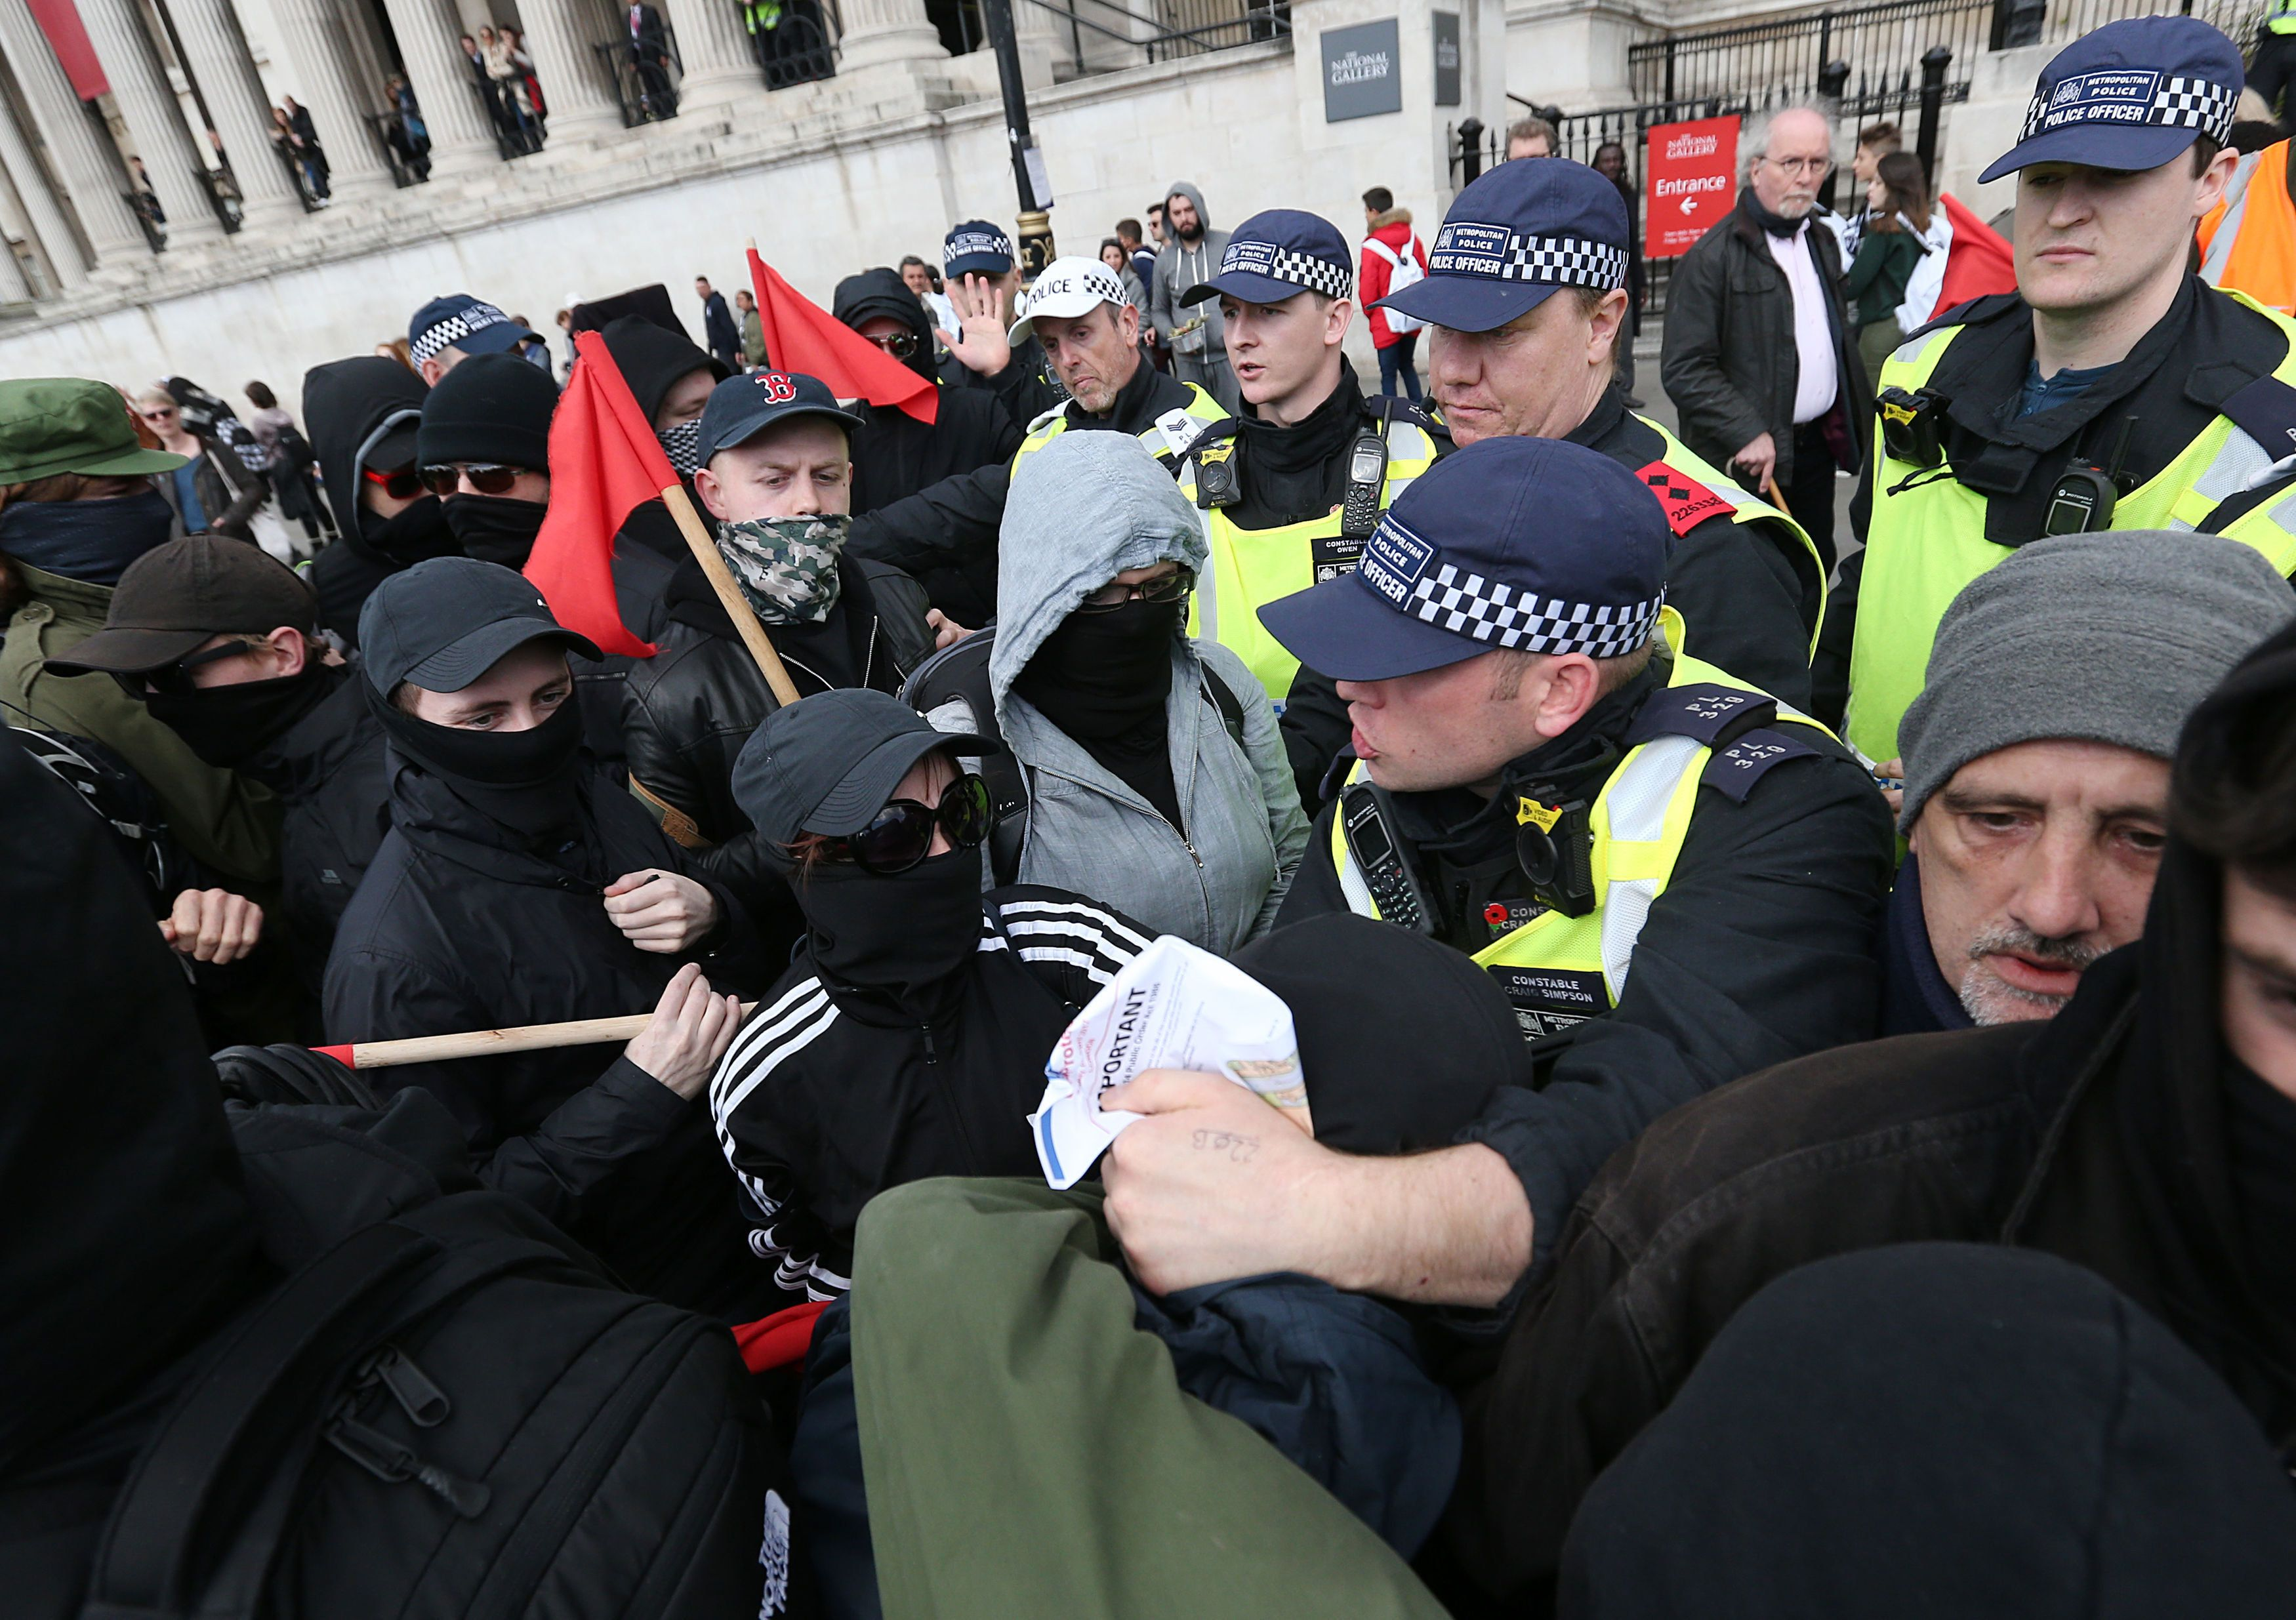 Ugly Scenes As Rival EDL And Counter-Fascist Demonstrations Take